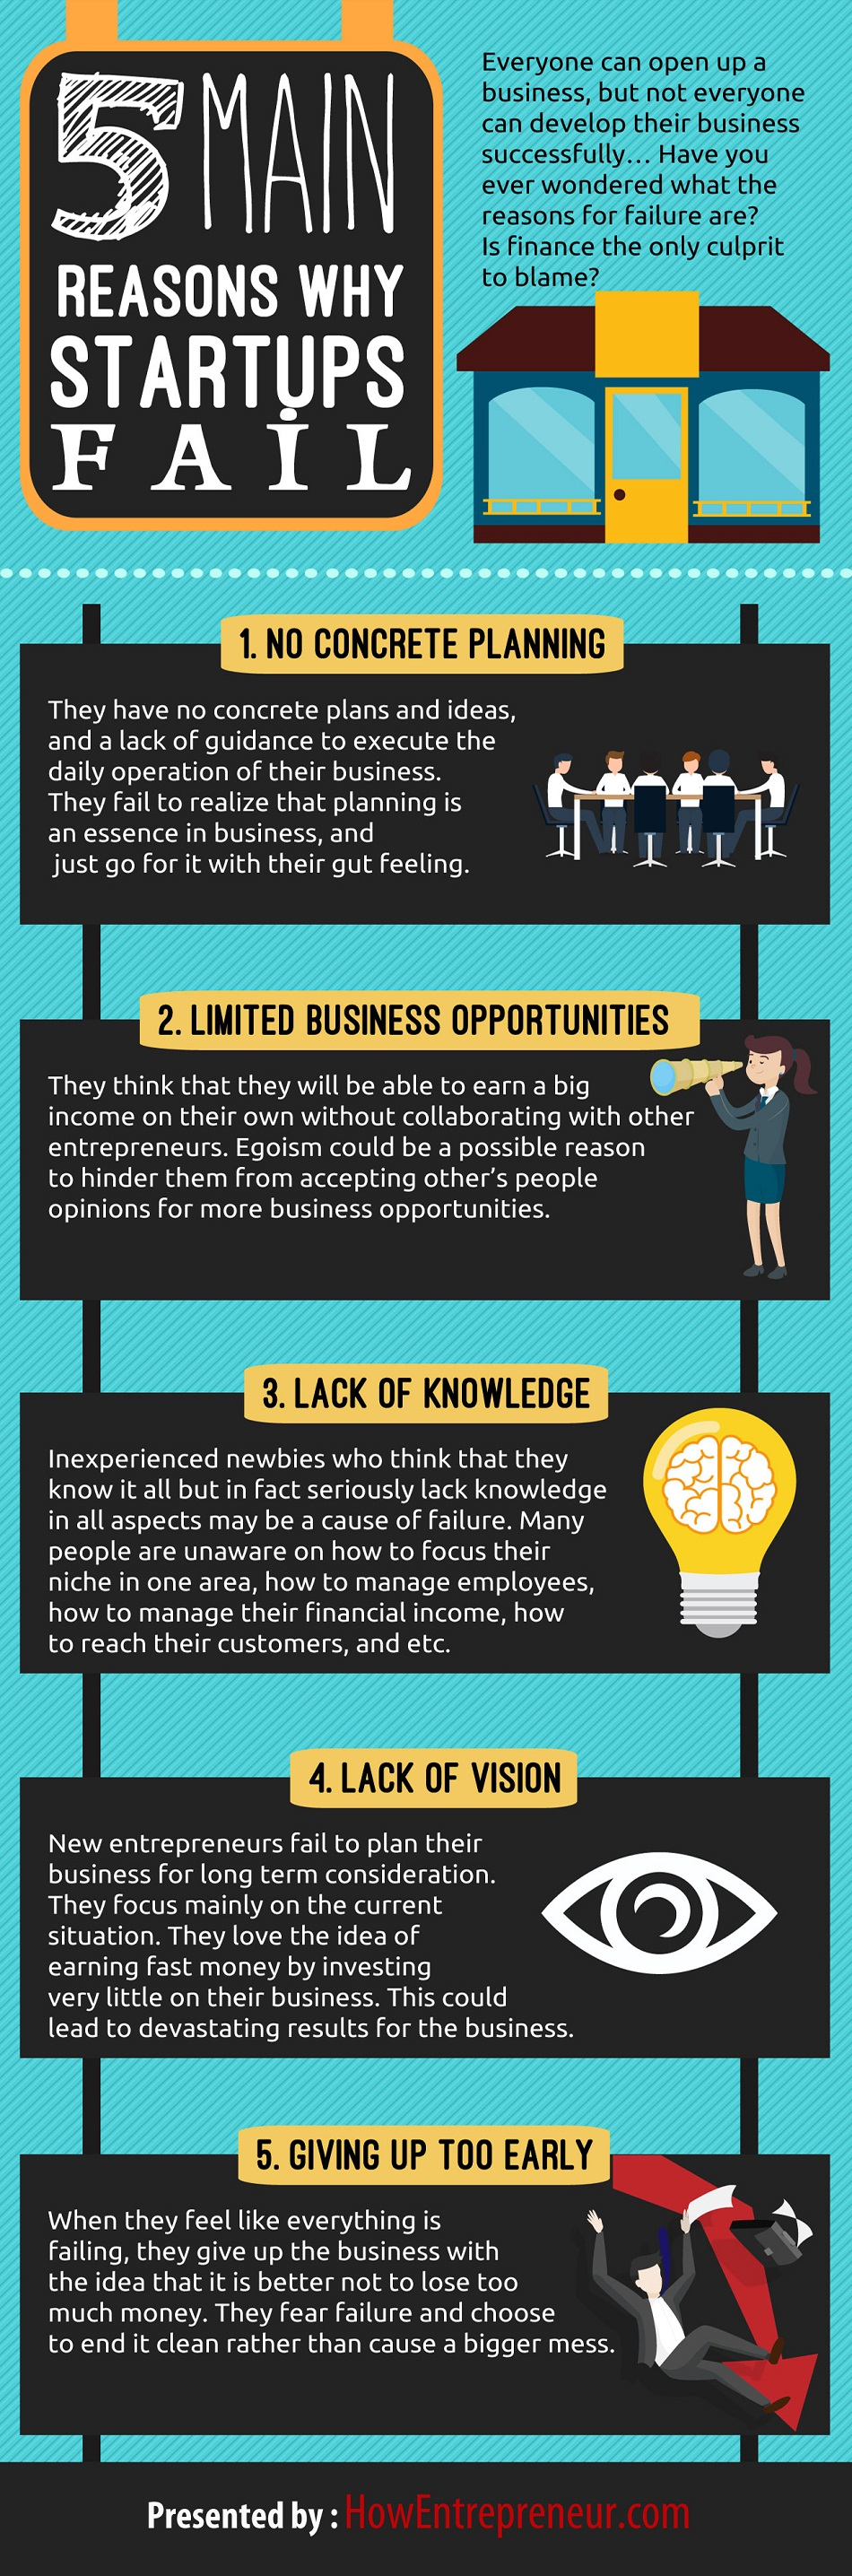 5 Main Reasons Why Startups Fail